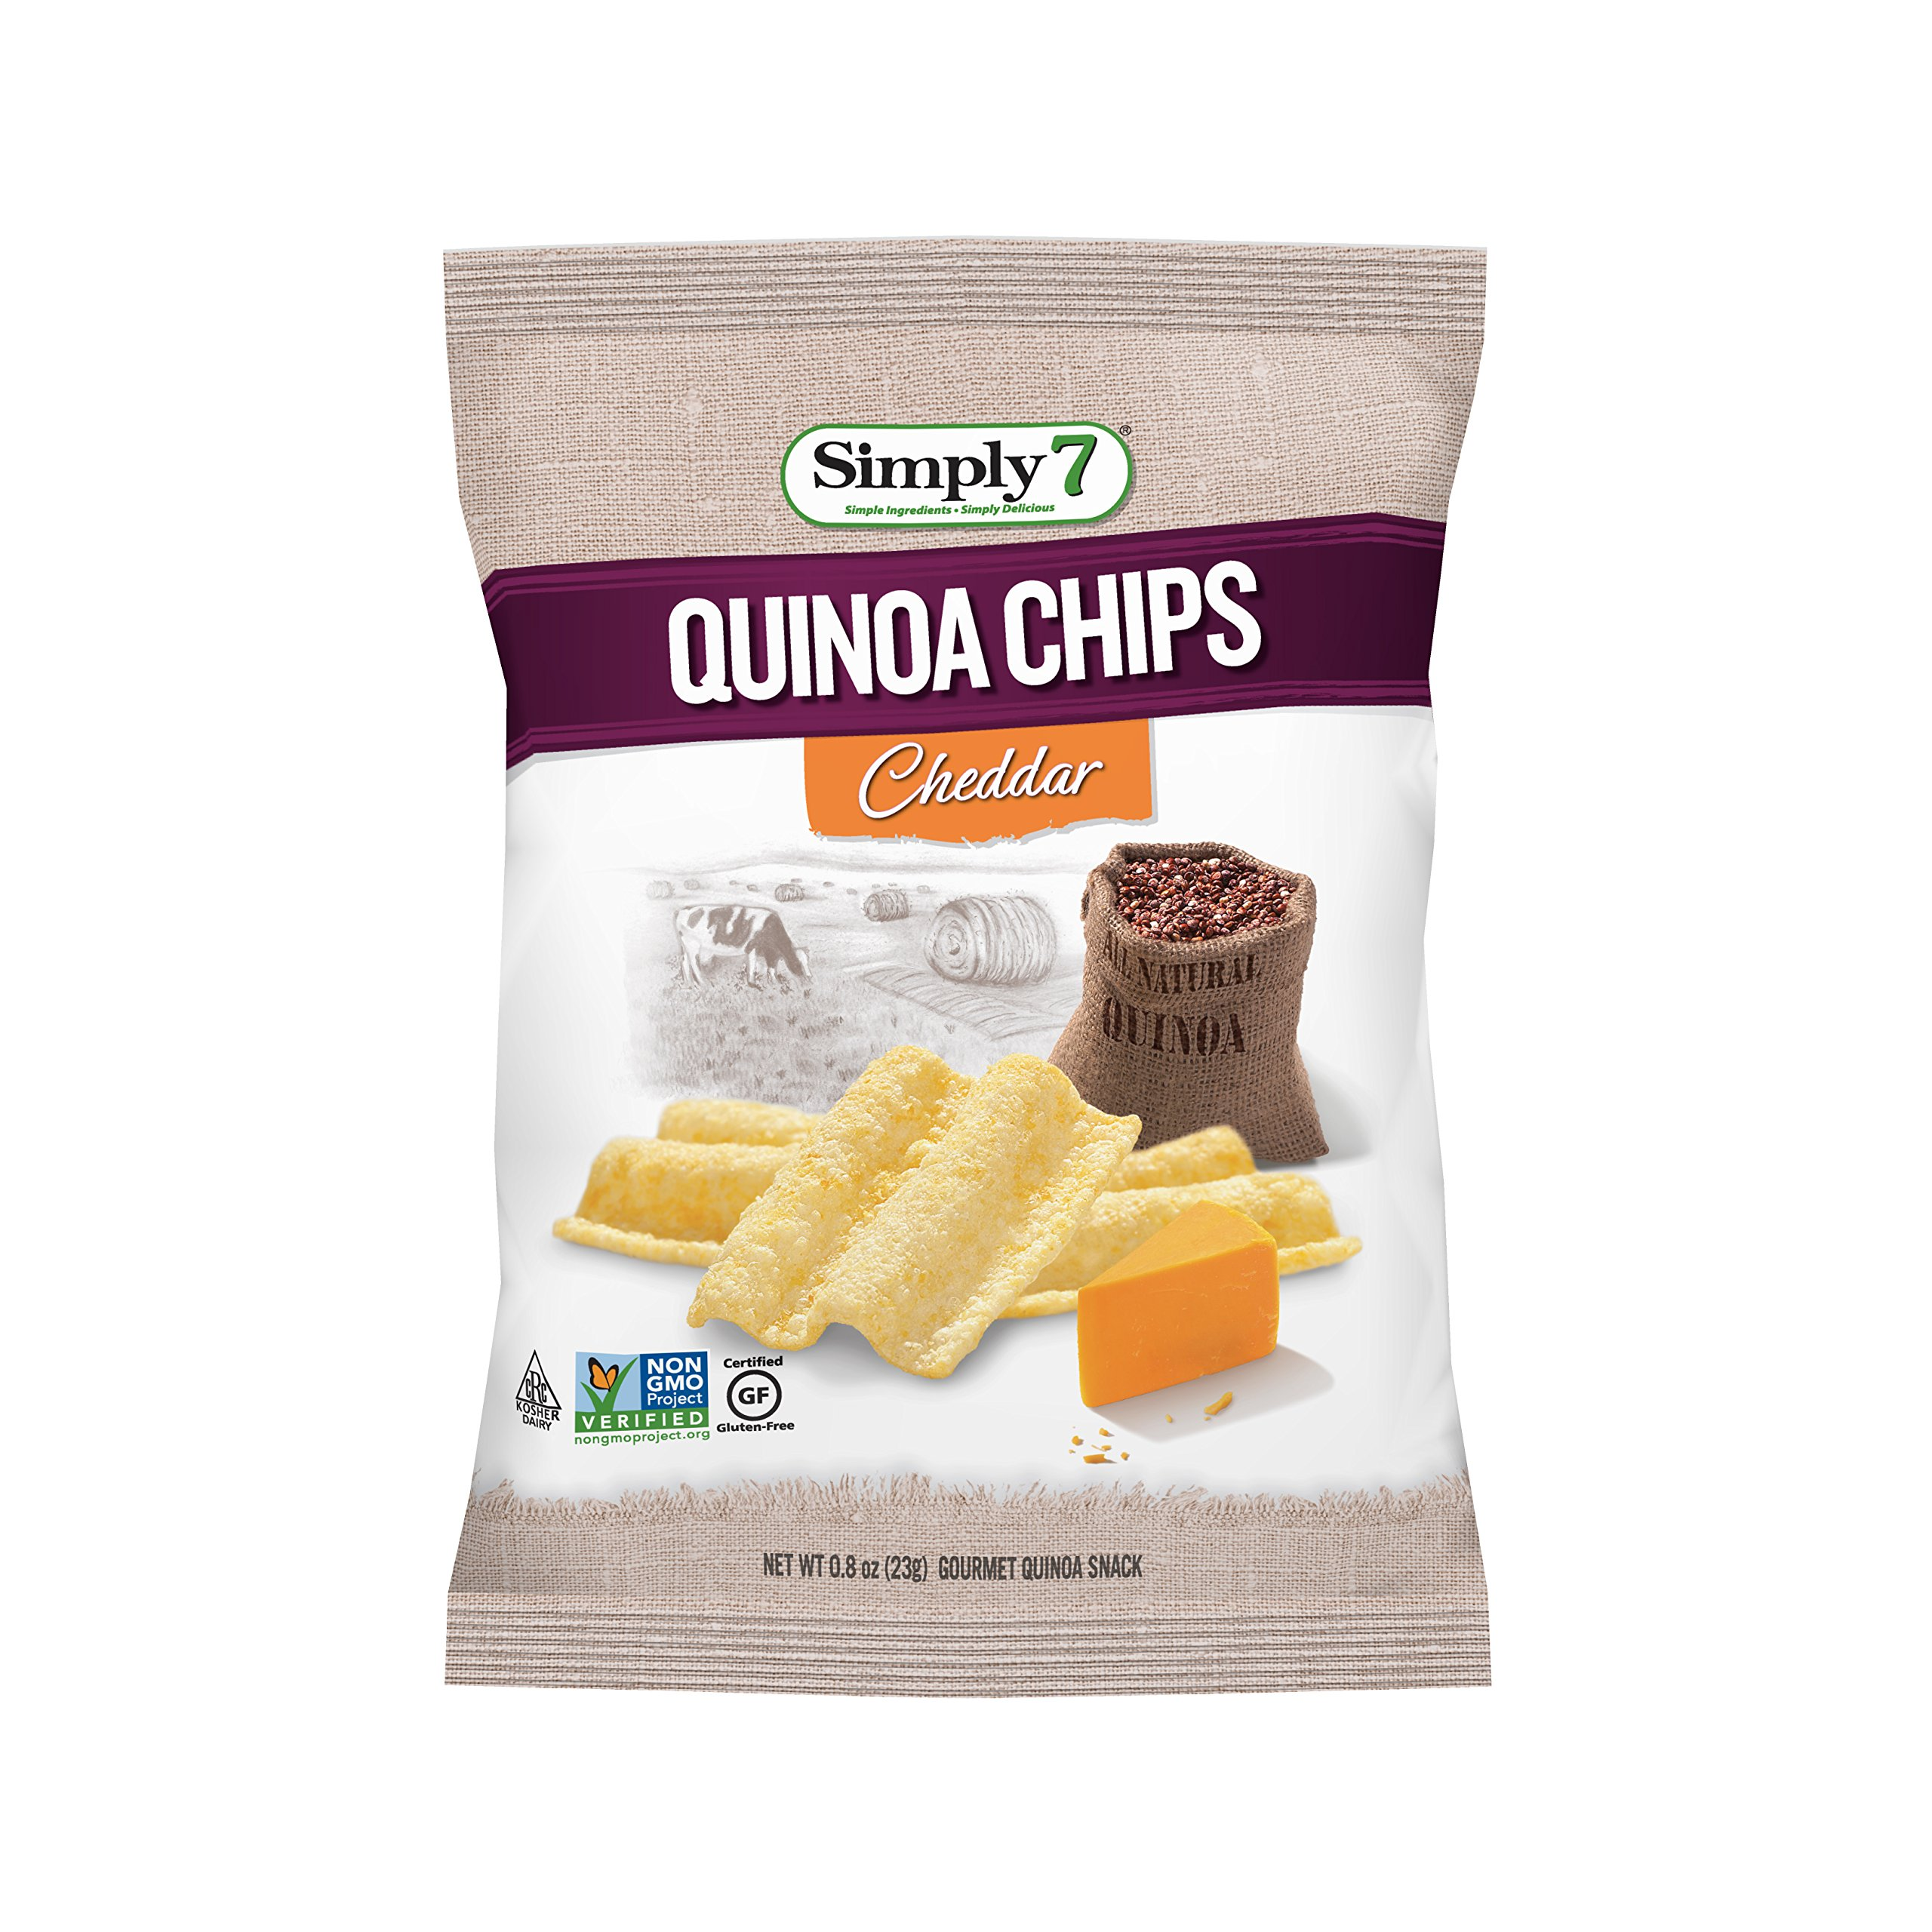 Simply7 Gluten Free Quinoa Chips, Cheddar, 0.8 Ounce (Pack of 24)